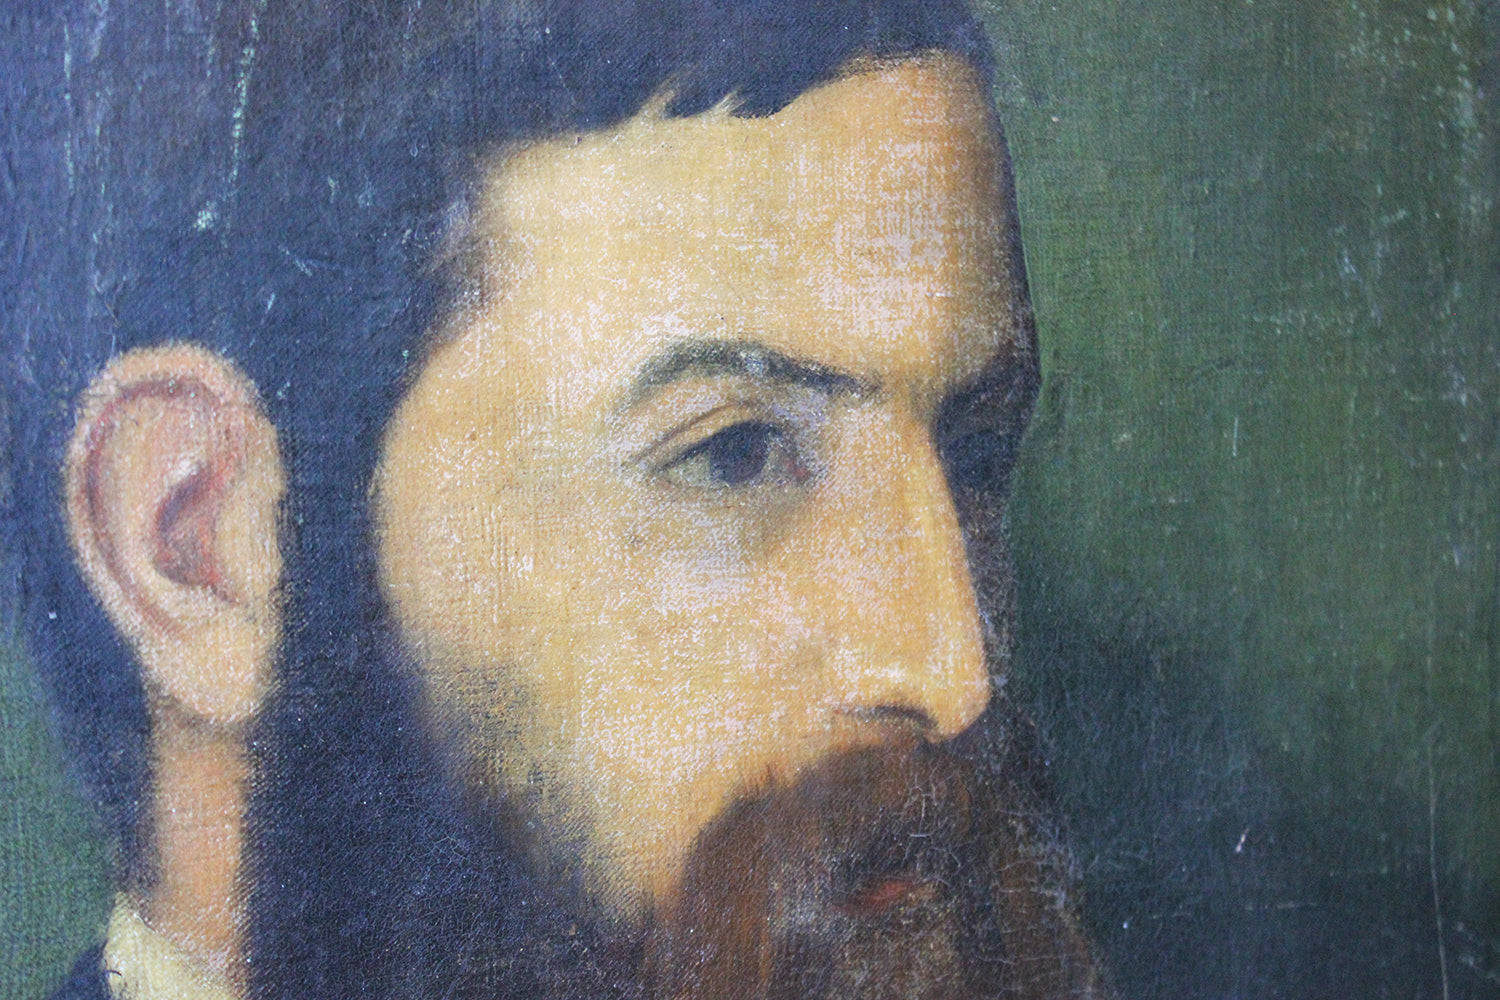 Circle of George Frederic Watts (1817-1904); An Oil on Canvas Portrait of a Bearded Gentleman c.1850-70